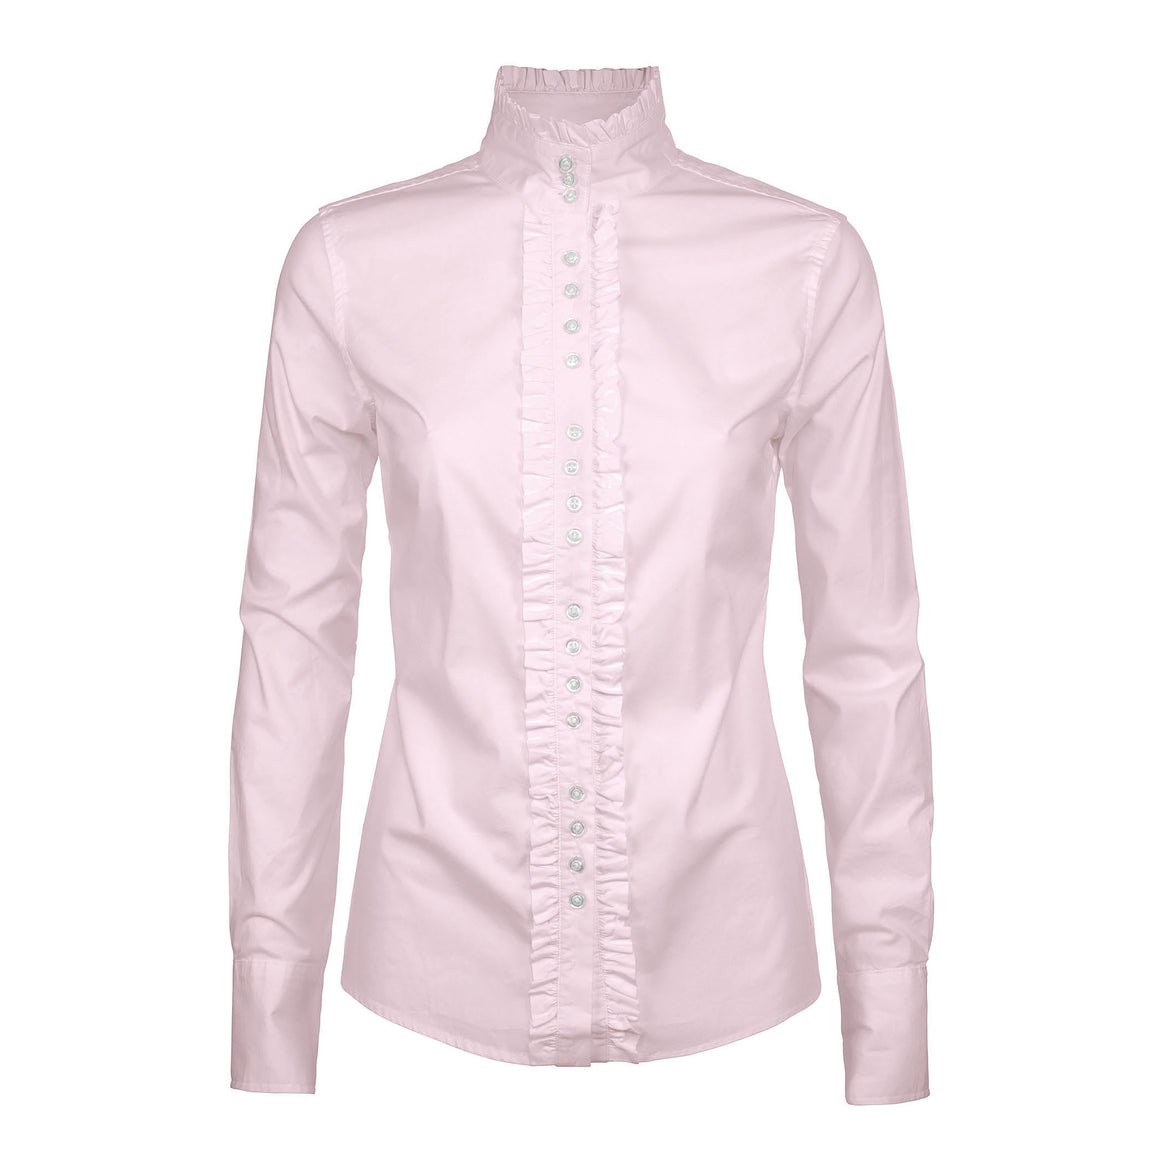 Camonile Blouse for Women in Pale Pink